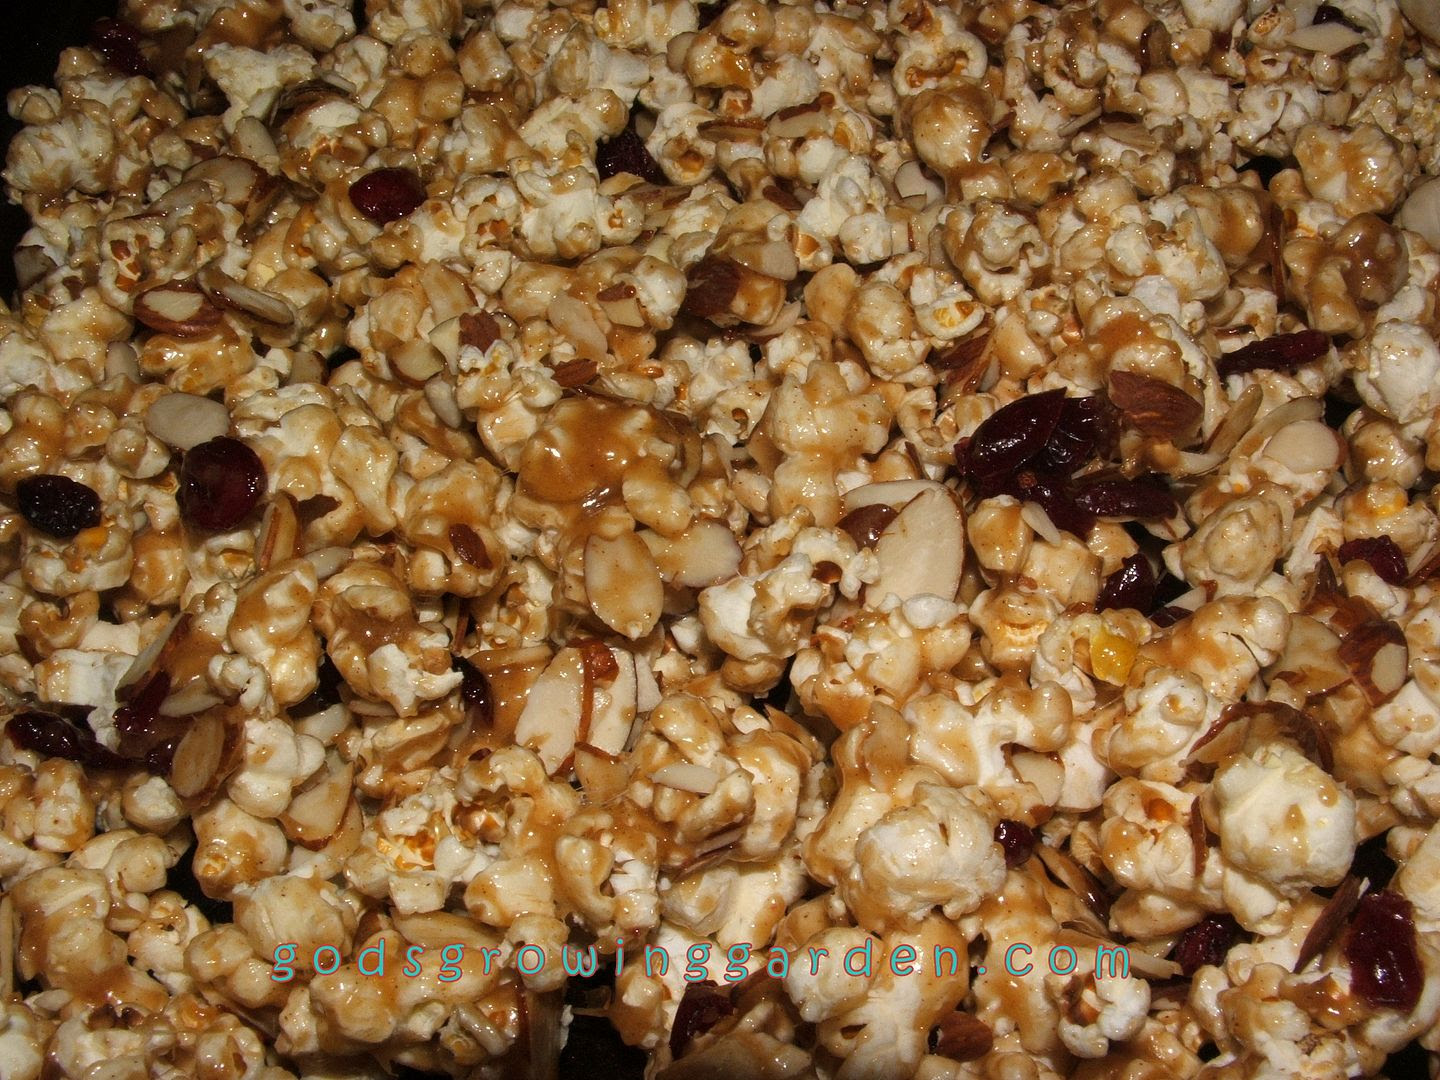 caramel popcorn by Angie Ouellette-Tower for godsgrowinggarden.com photo 007_zps6cf9d867.jpg